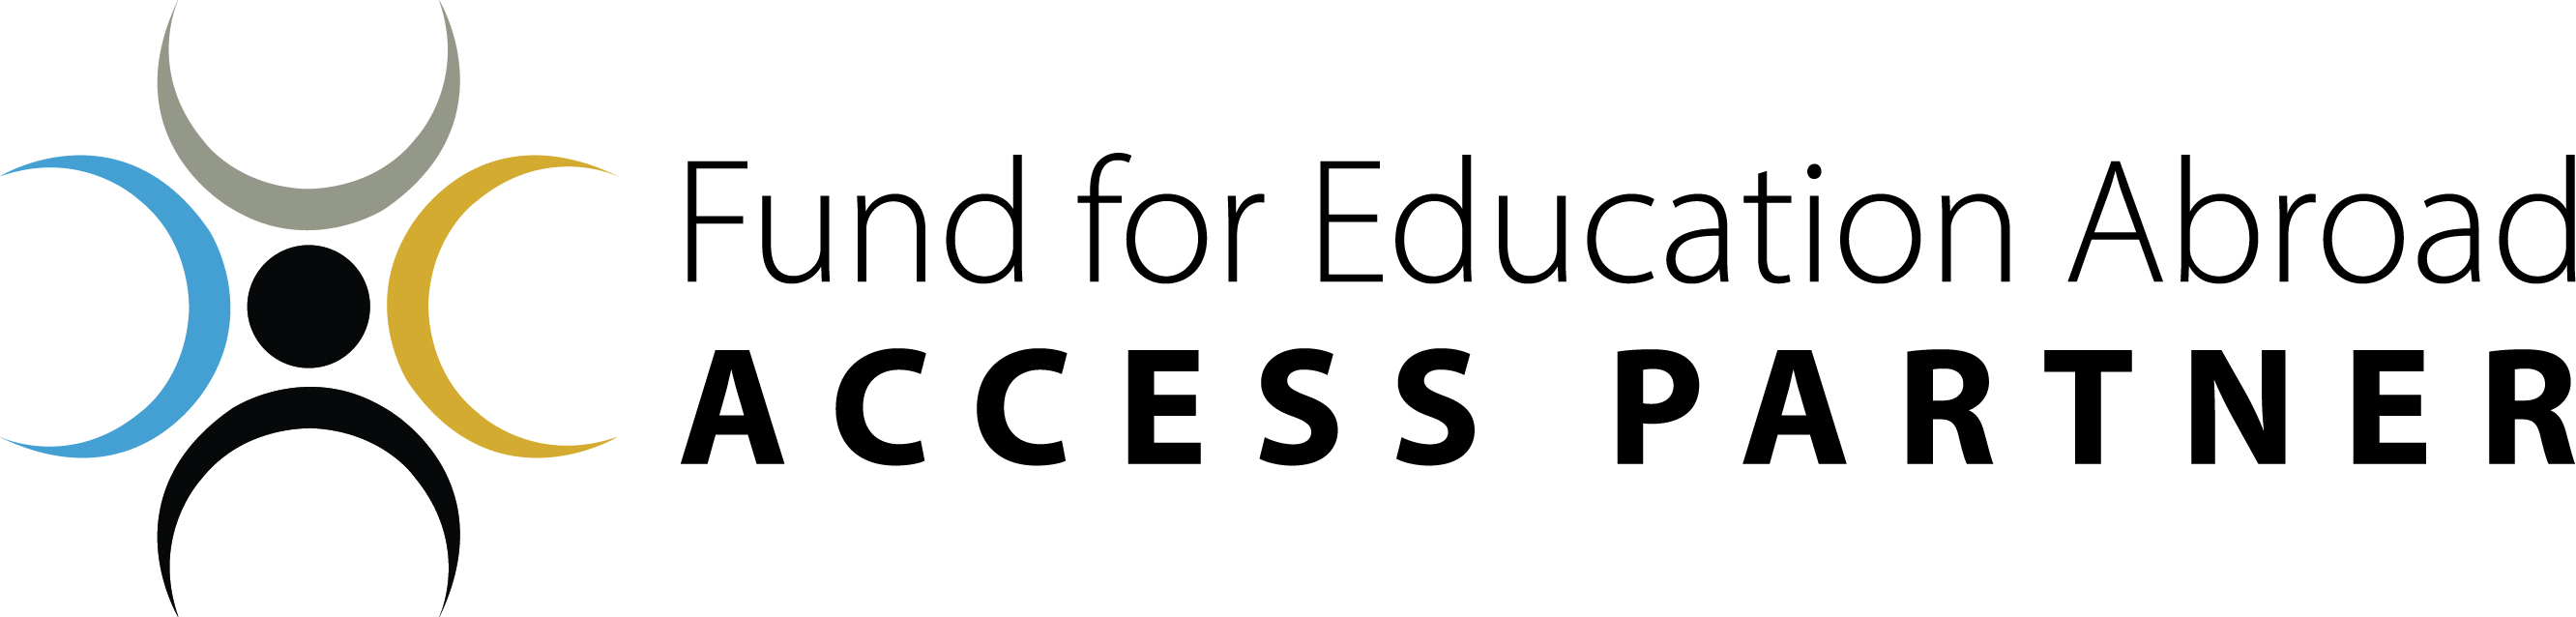 FEA Access Partner Logo-1.jpg